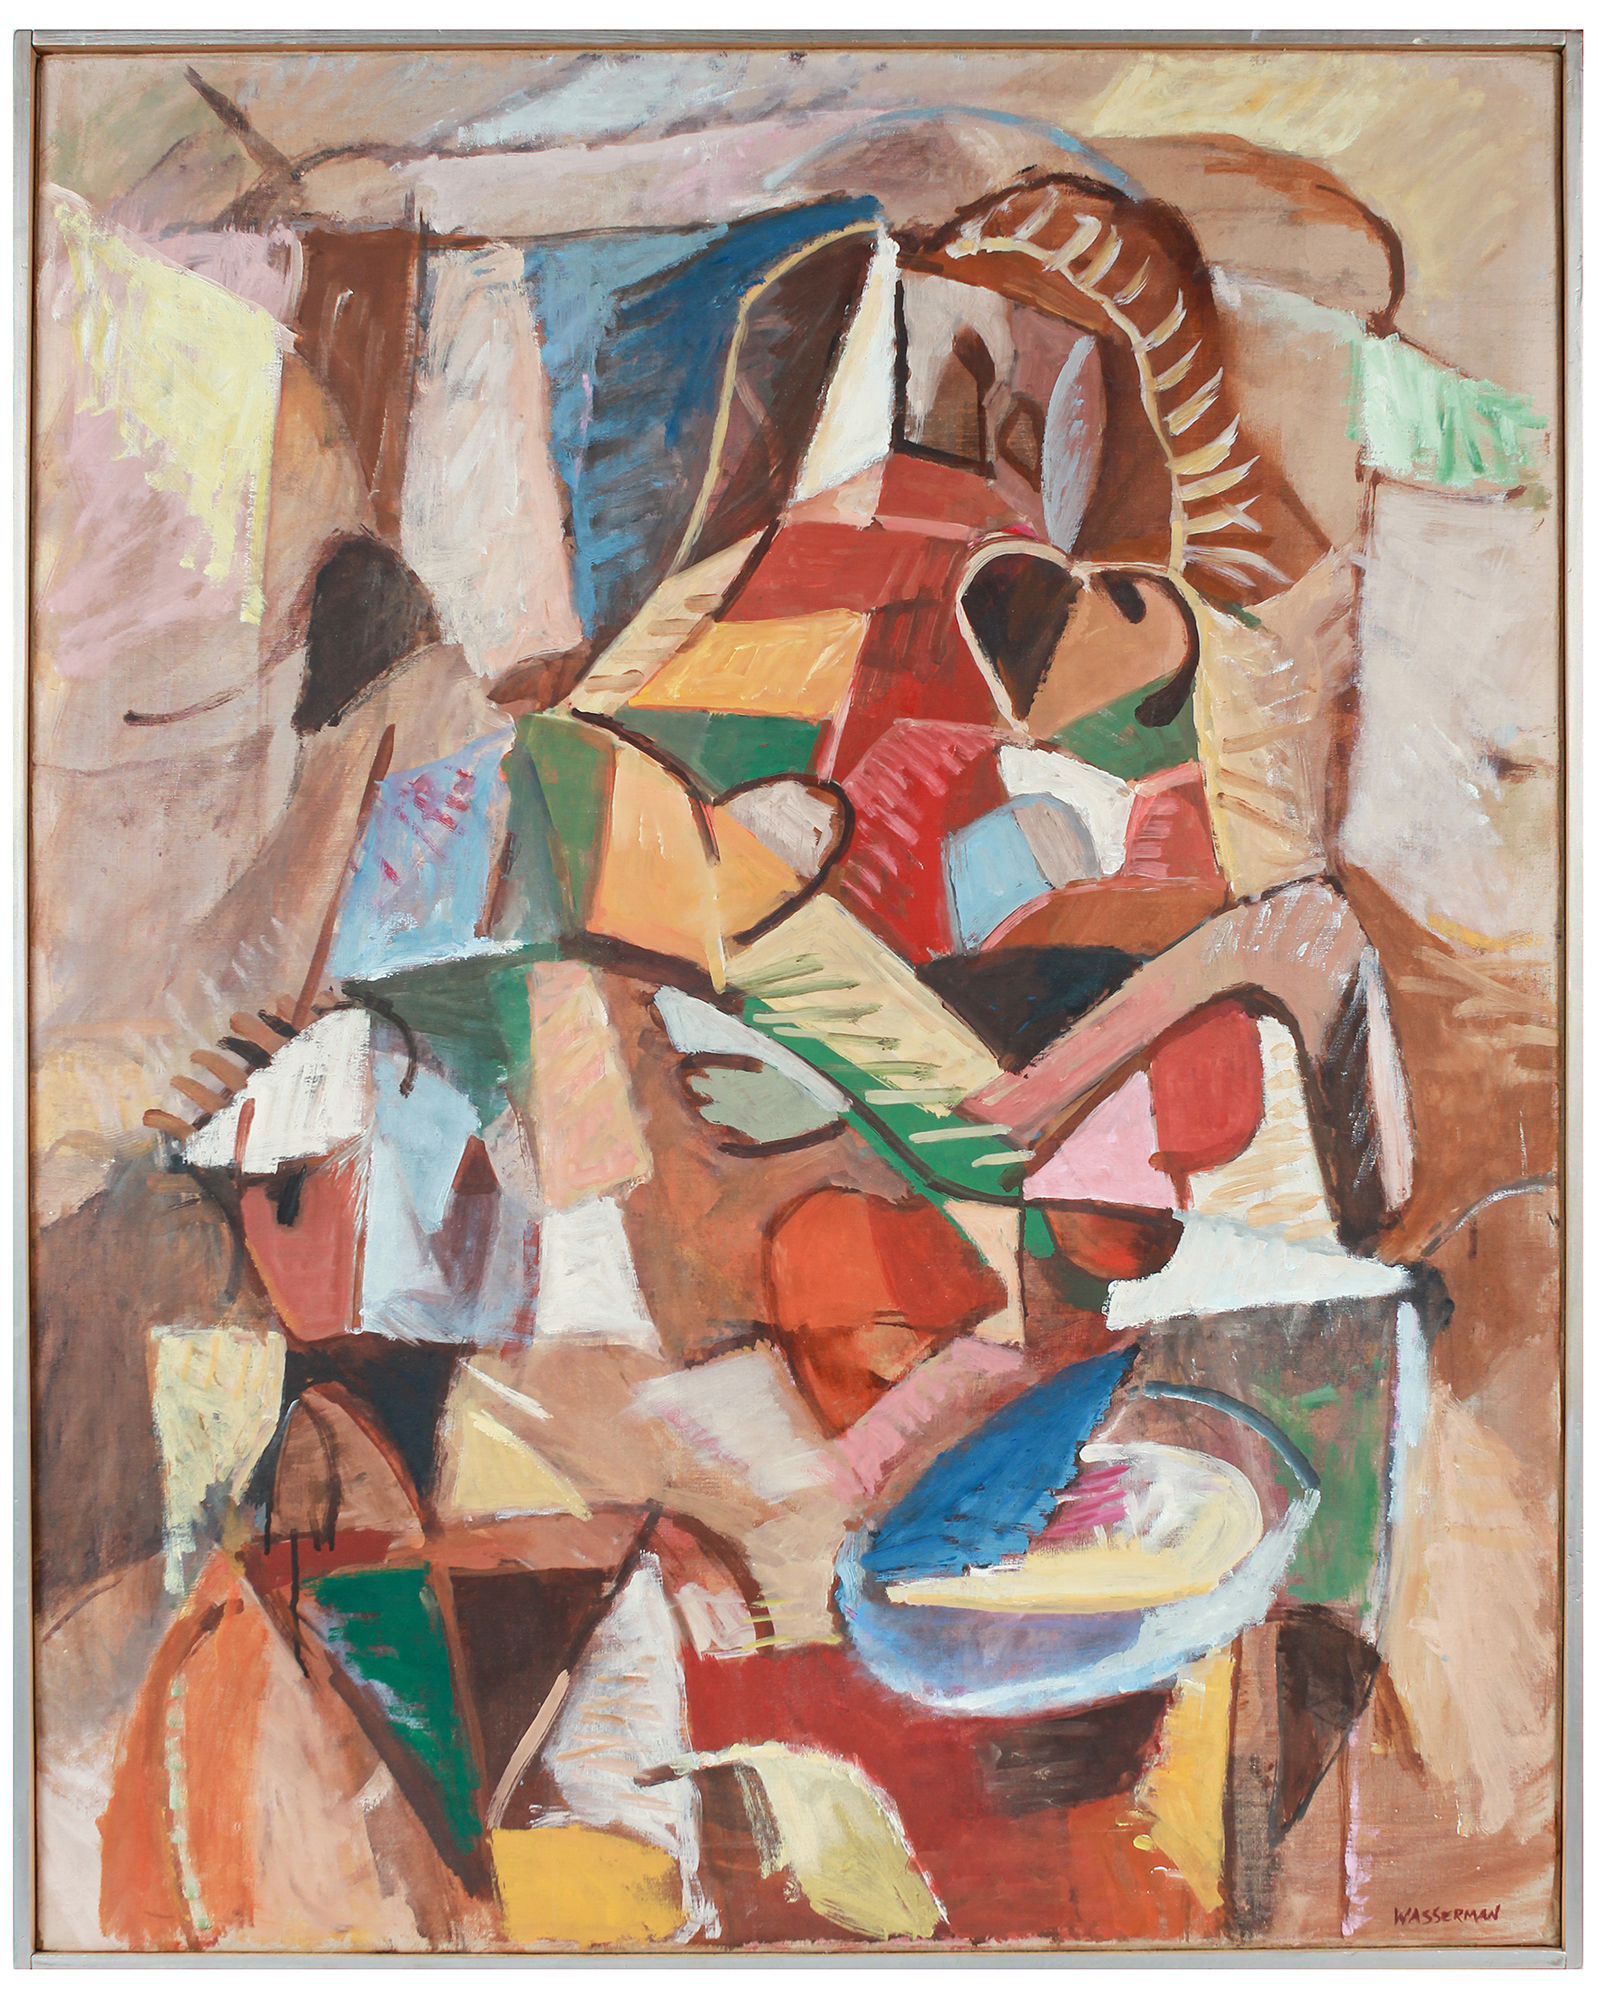 """Cubist Figure & Still Life Abstraction"" by Gerald Wasserman,"